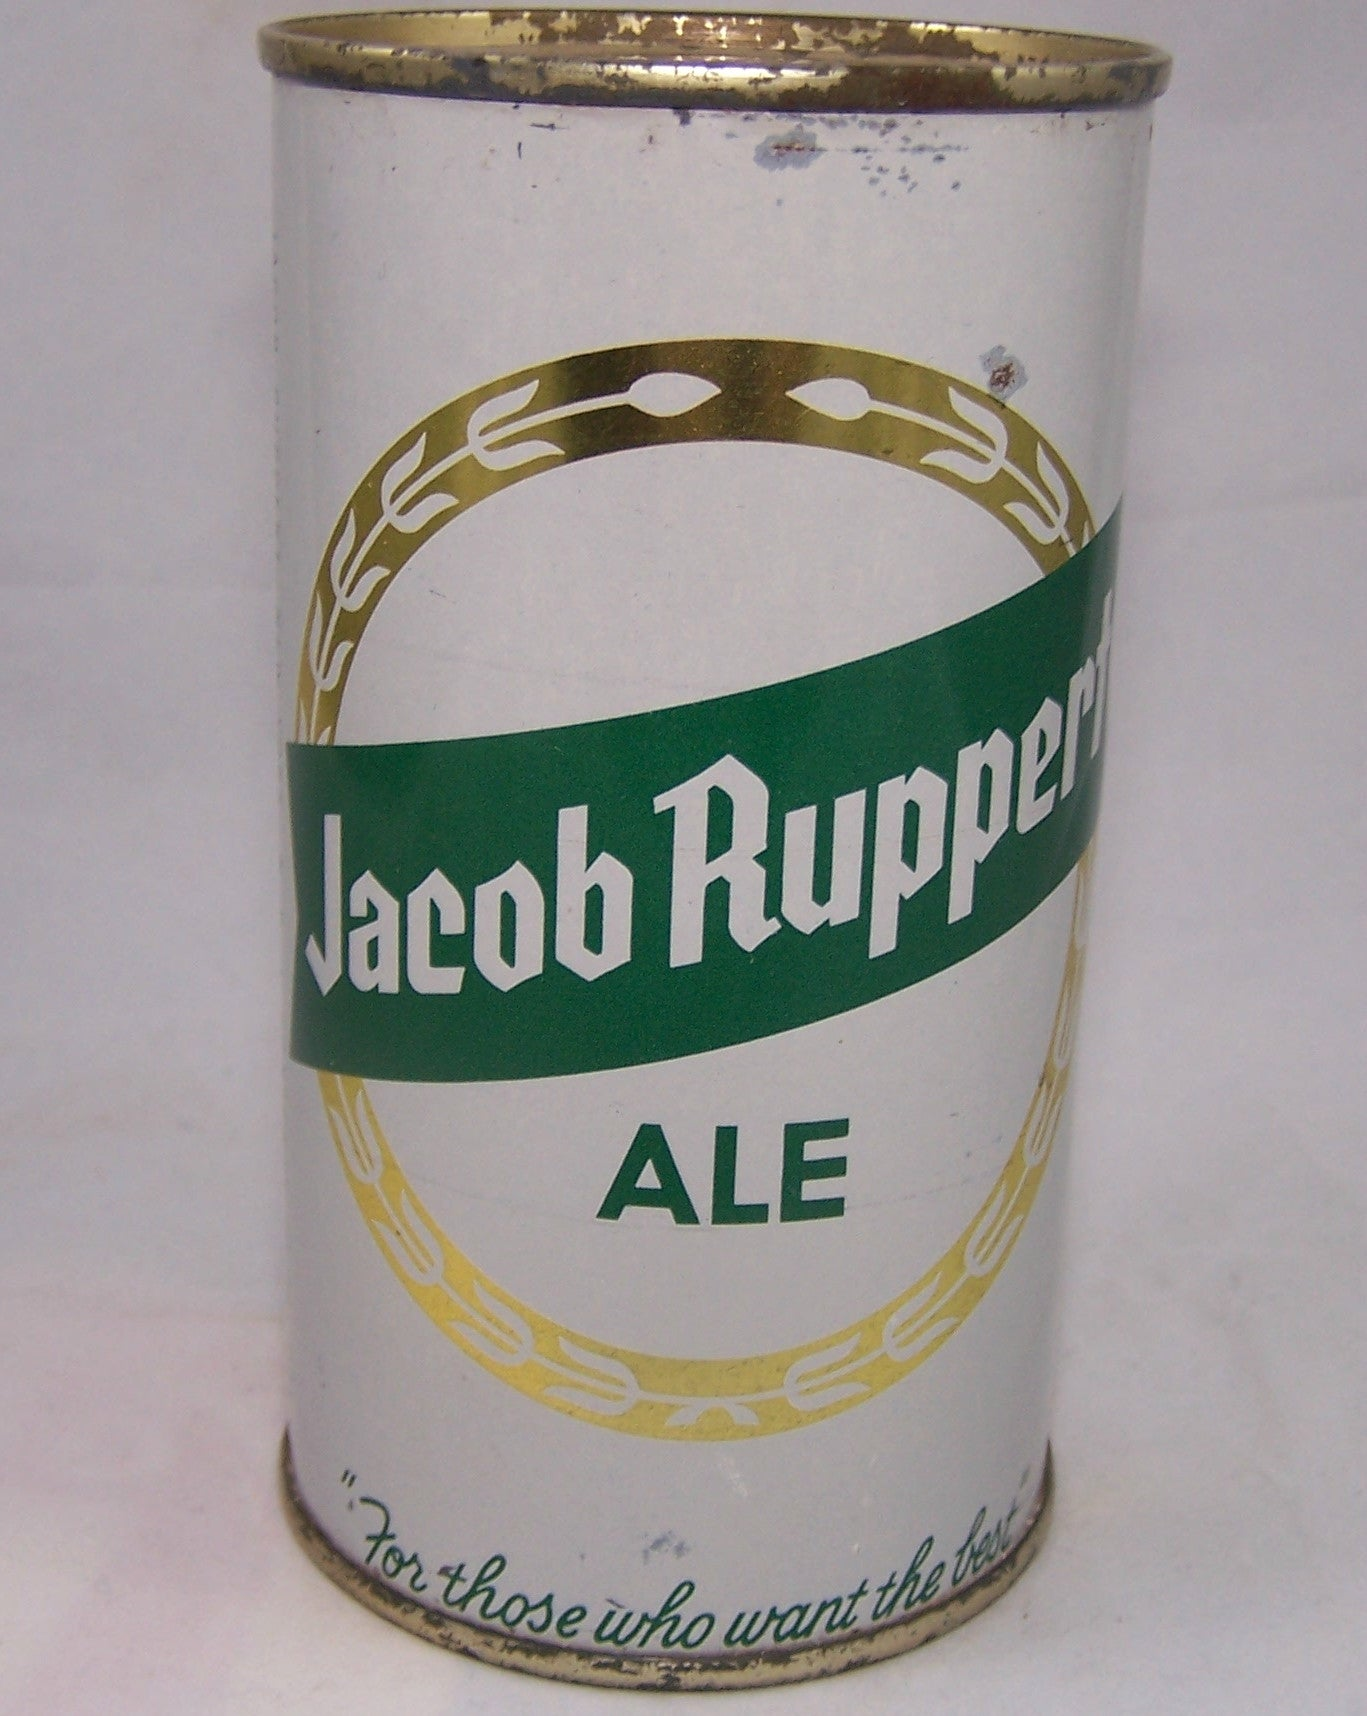 Jacob Ruppert Ale, USBC 125-38, Grade 1 Sold on 10/15/17